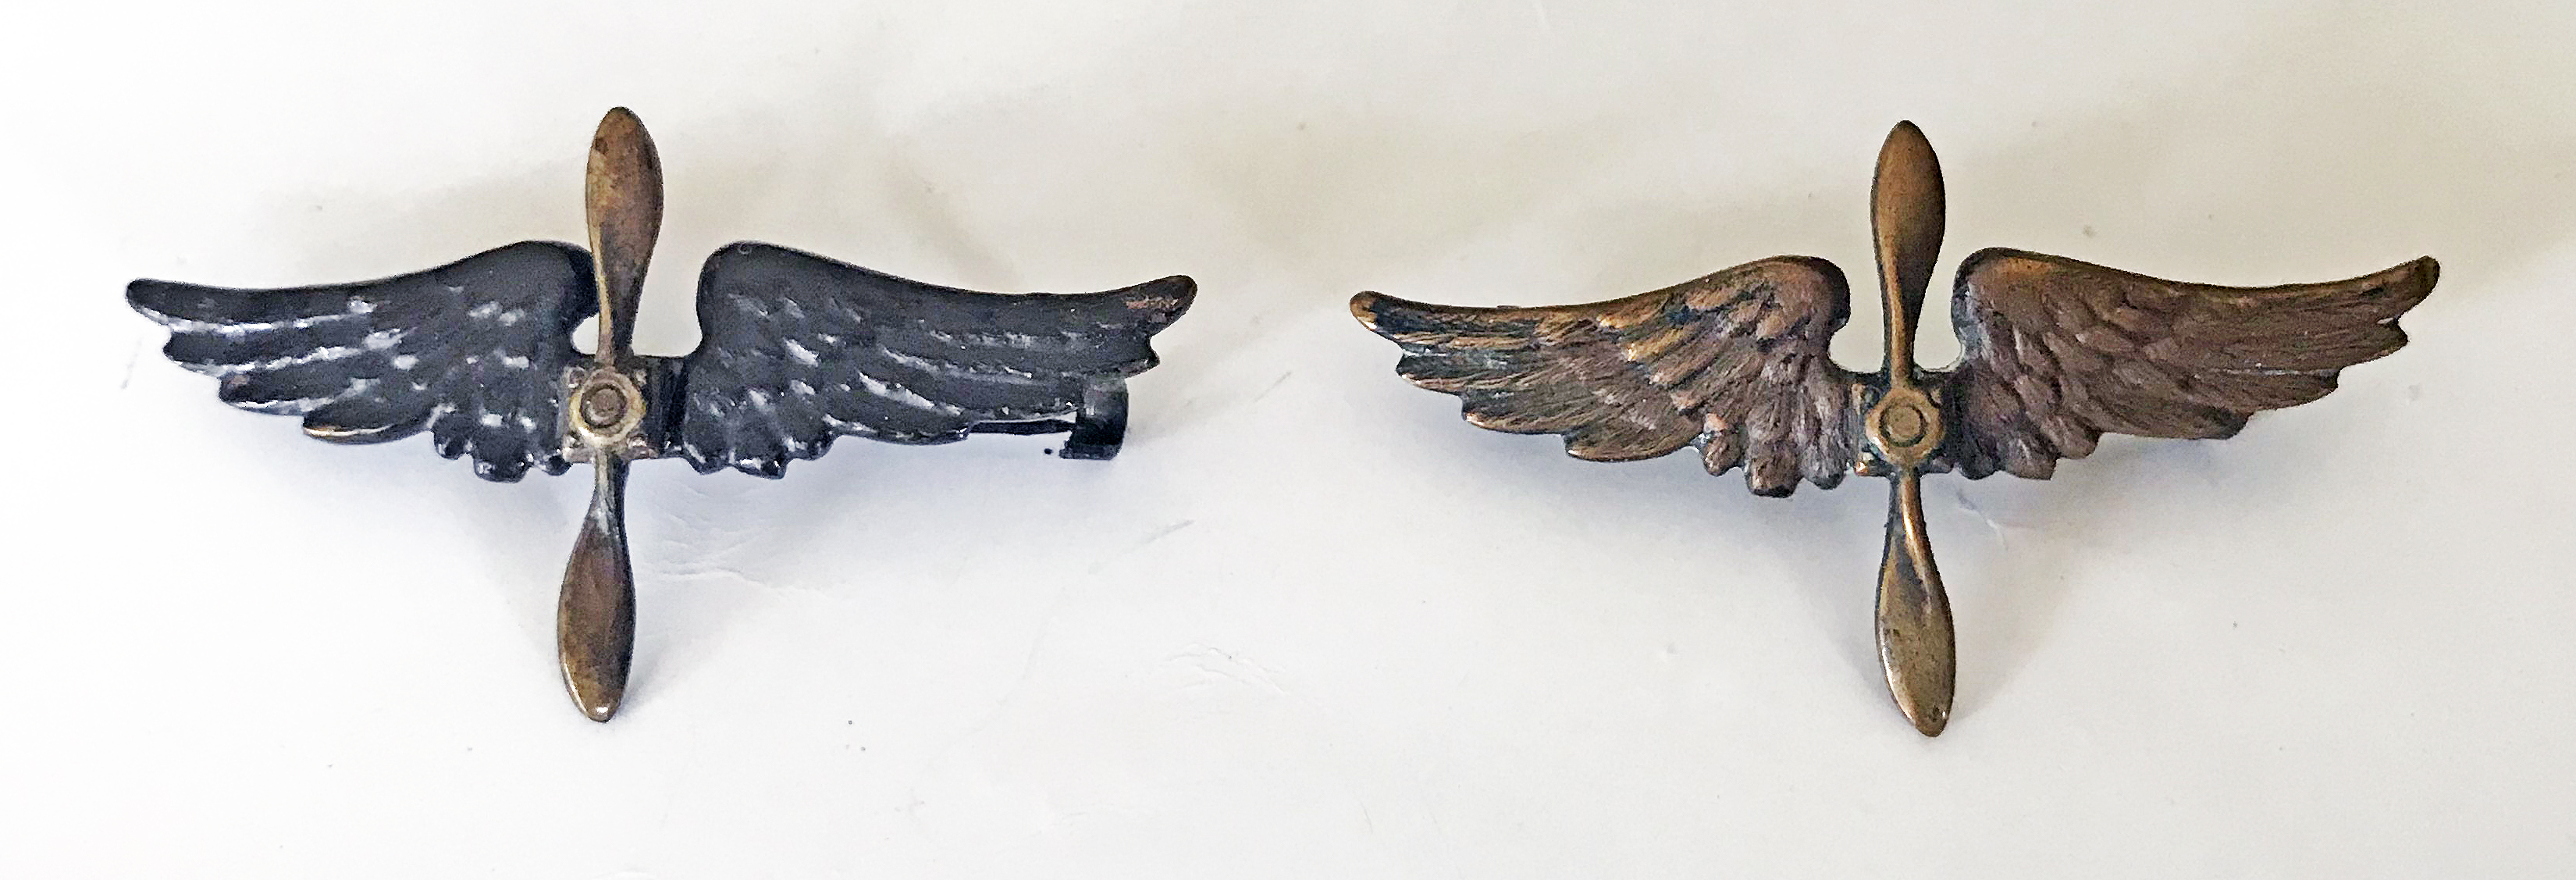 US Air Service winged propellor collar devices.